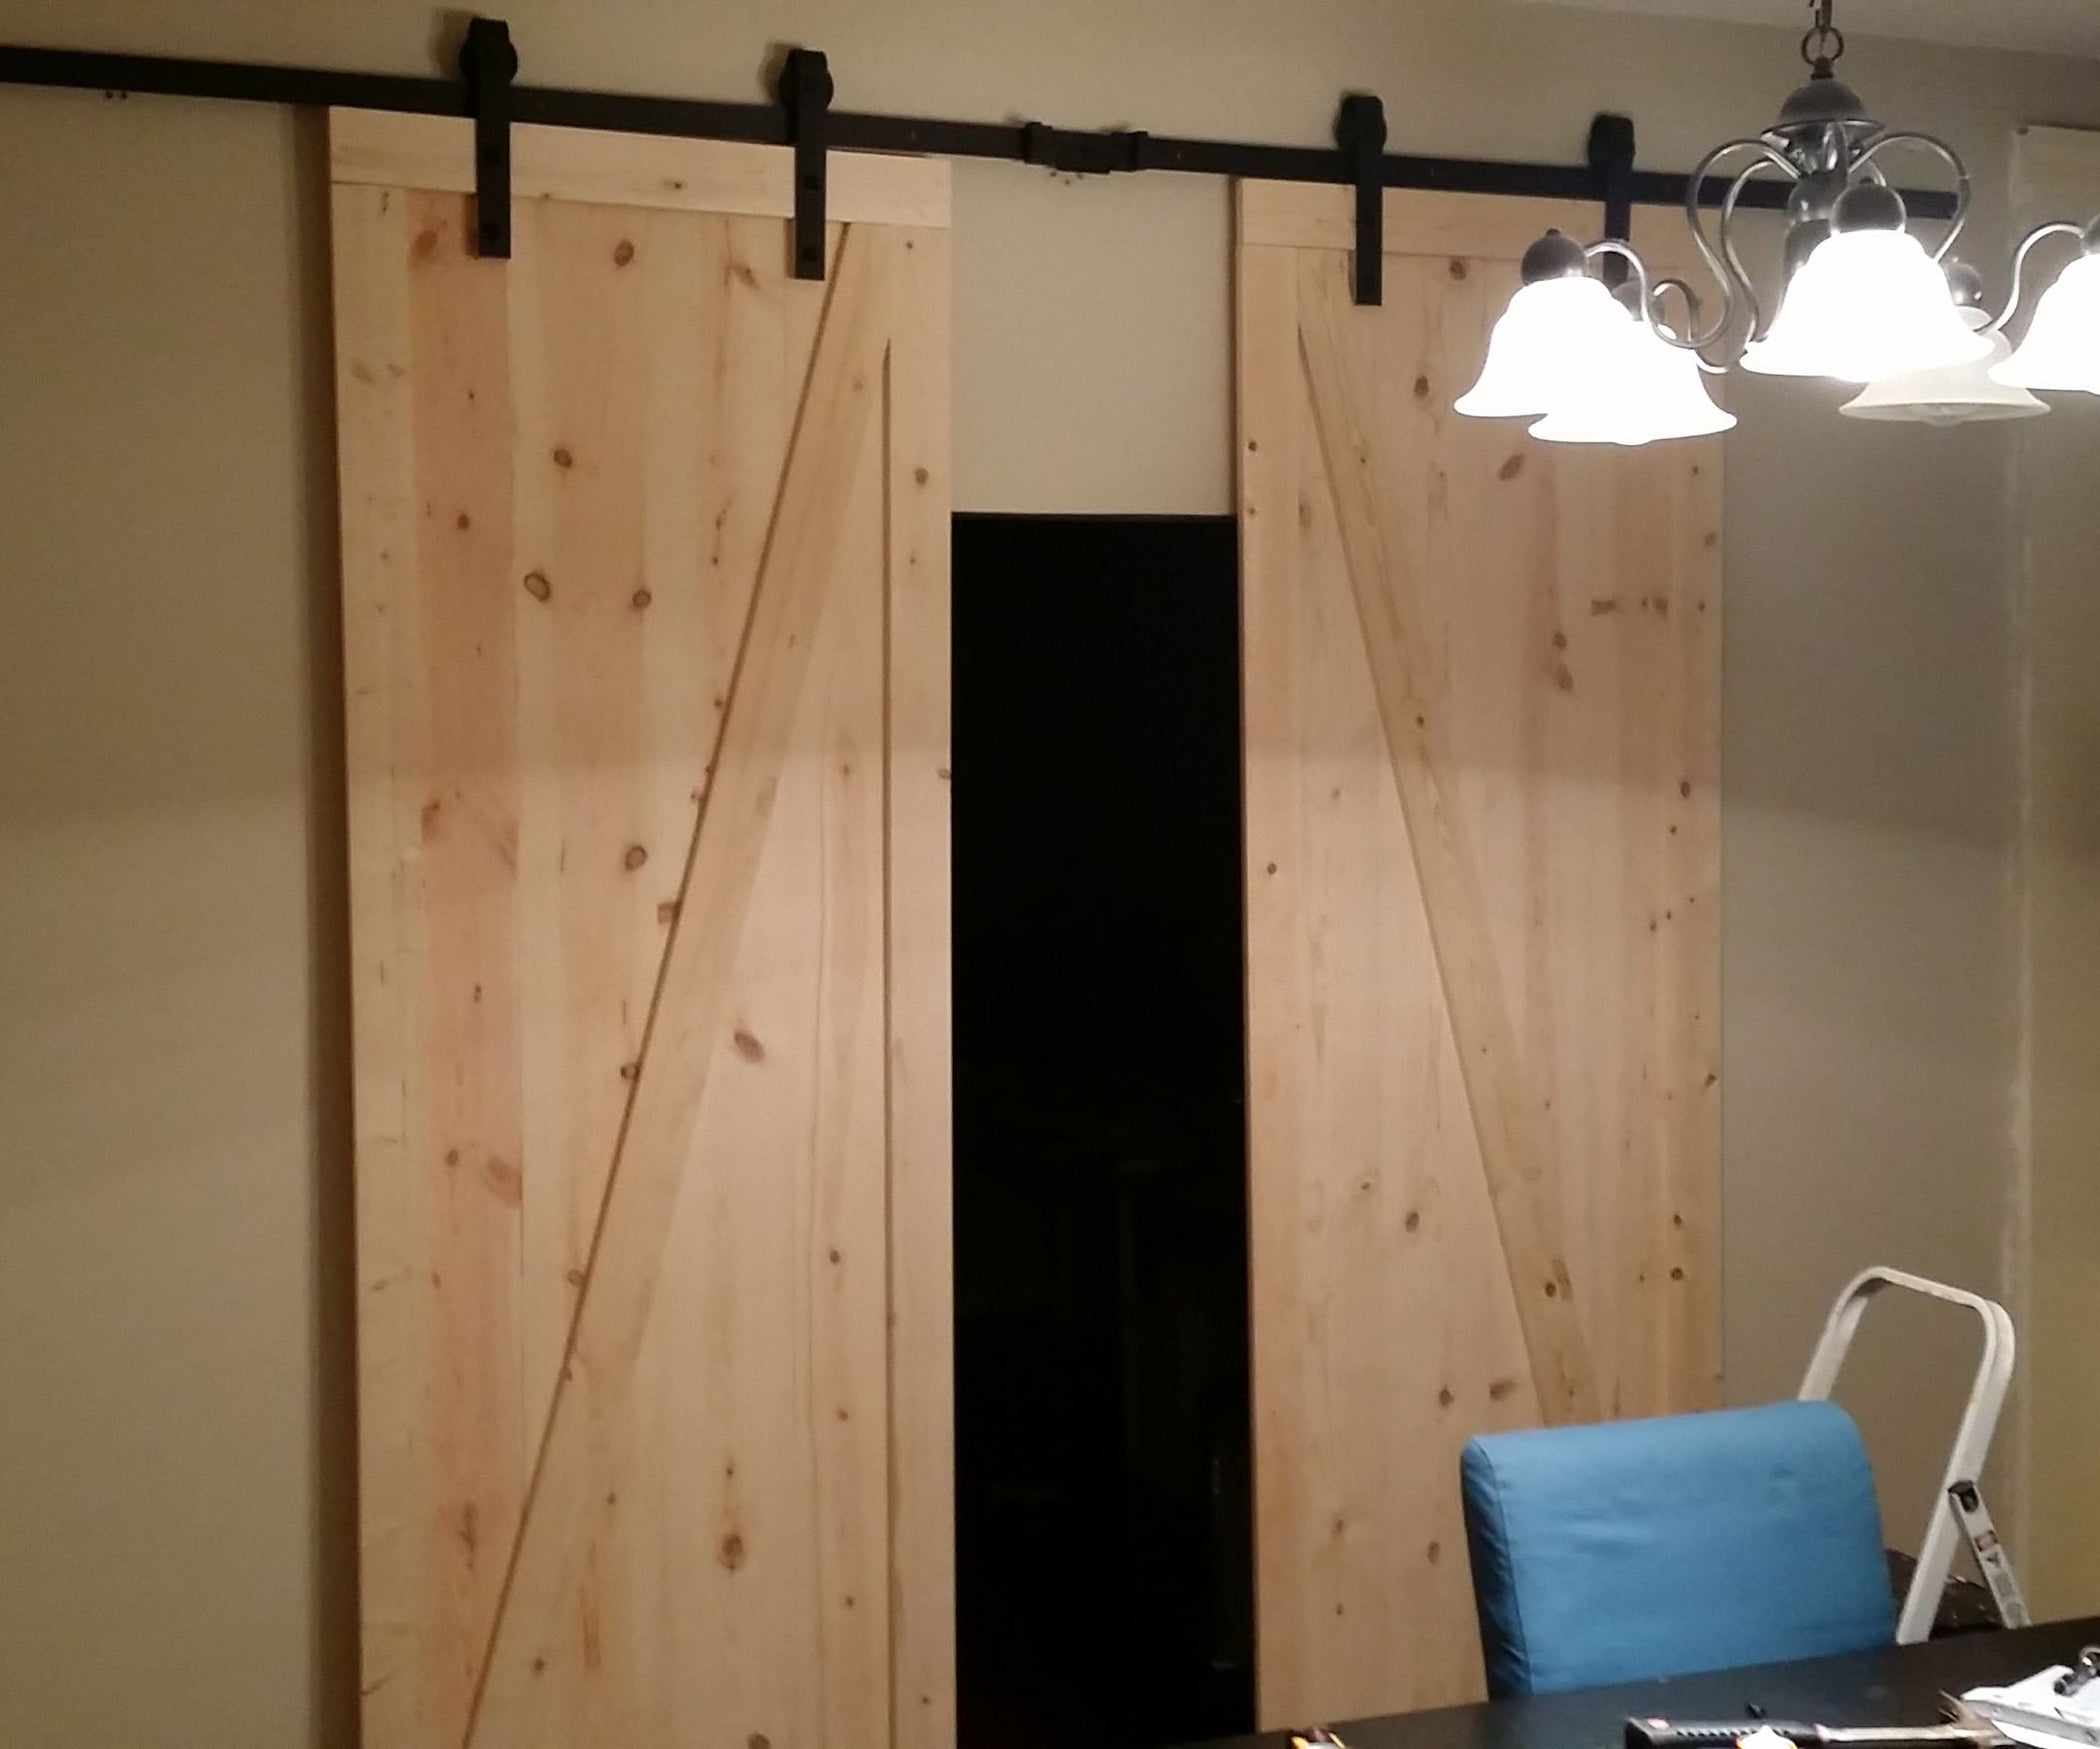 Diy Barn Doors On Somewhat Of A Budget 5 Steps Circuit Board Table Decor Nifty Ideas Crafty Crafts Pin